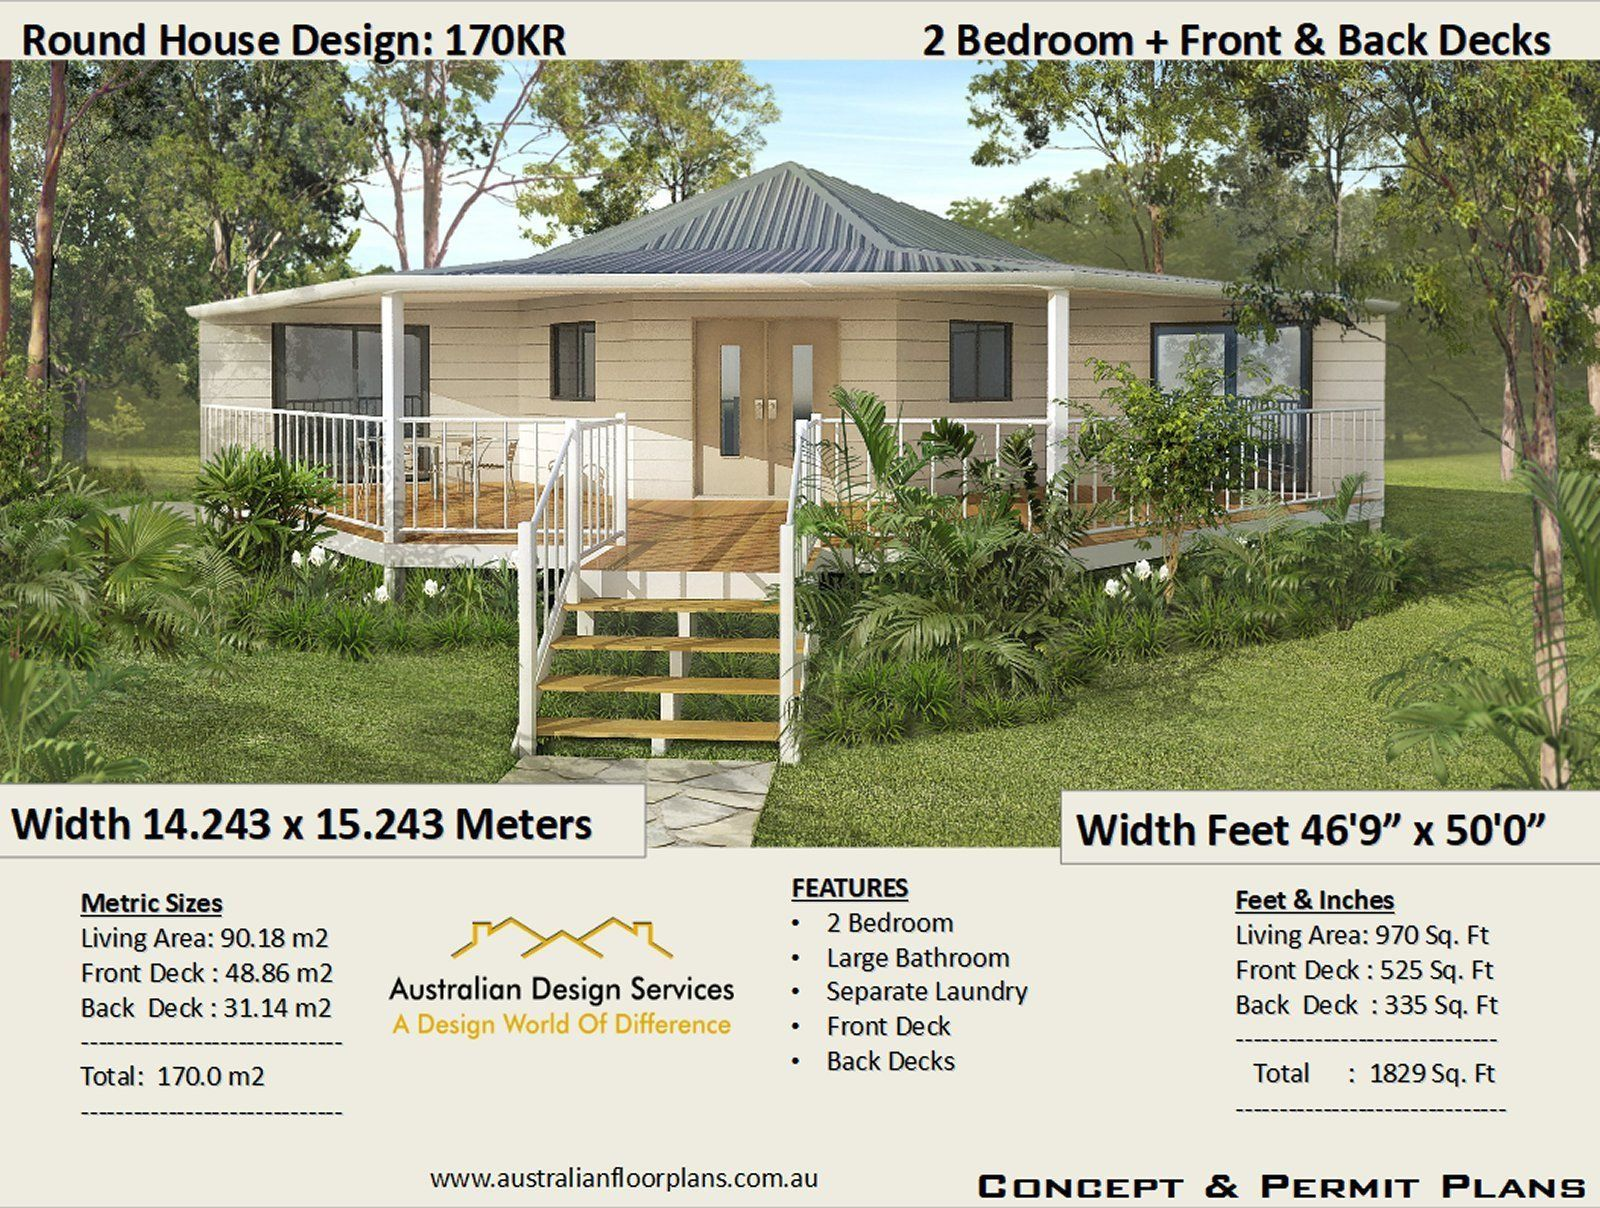 1830 Sq Feet Or 170 M2 2 Bedroom 2 Bed Granny Flat Small Etsy In 2020 Small House Design House Plans Simple House Plans